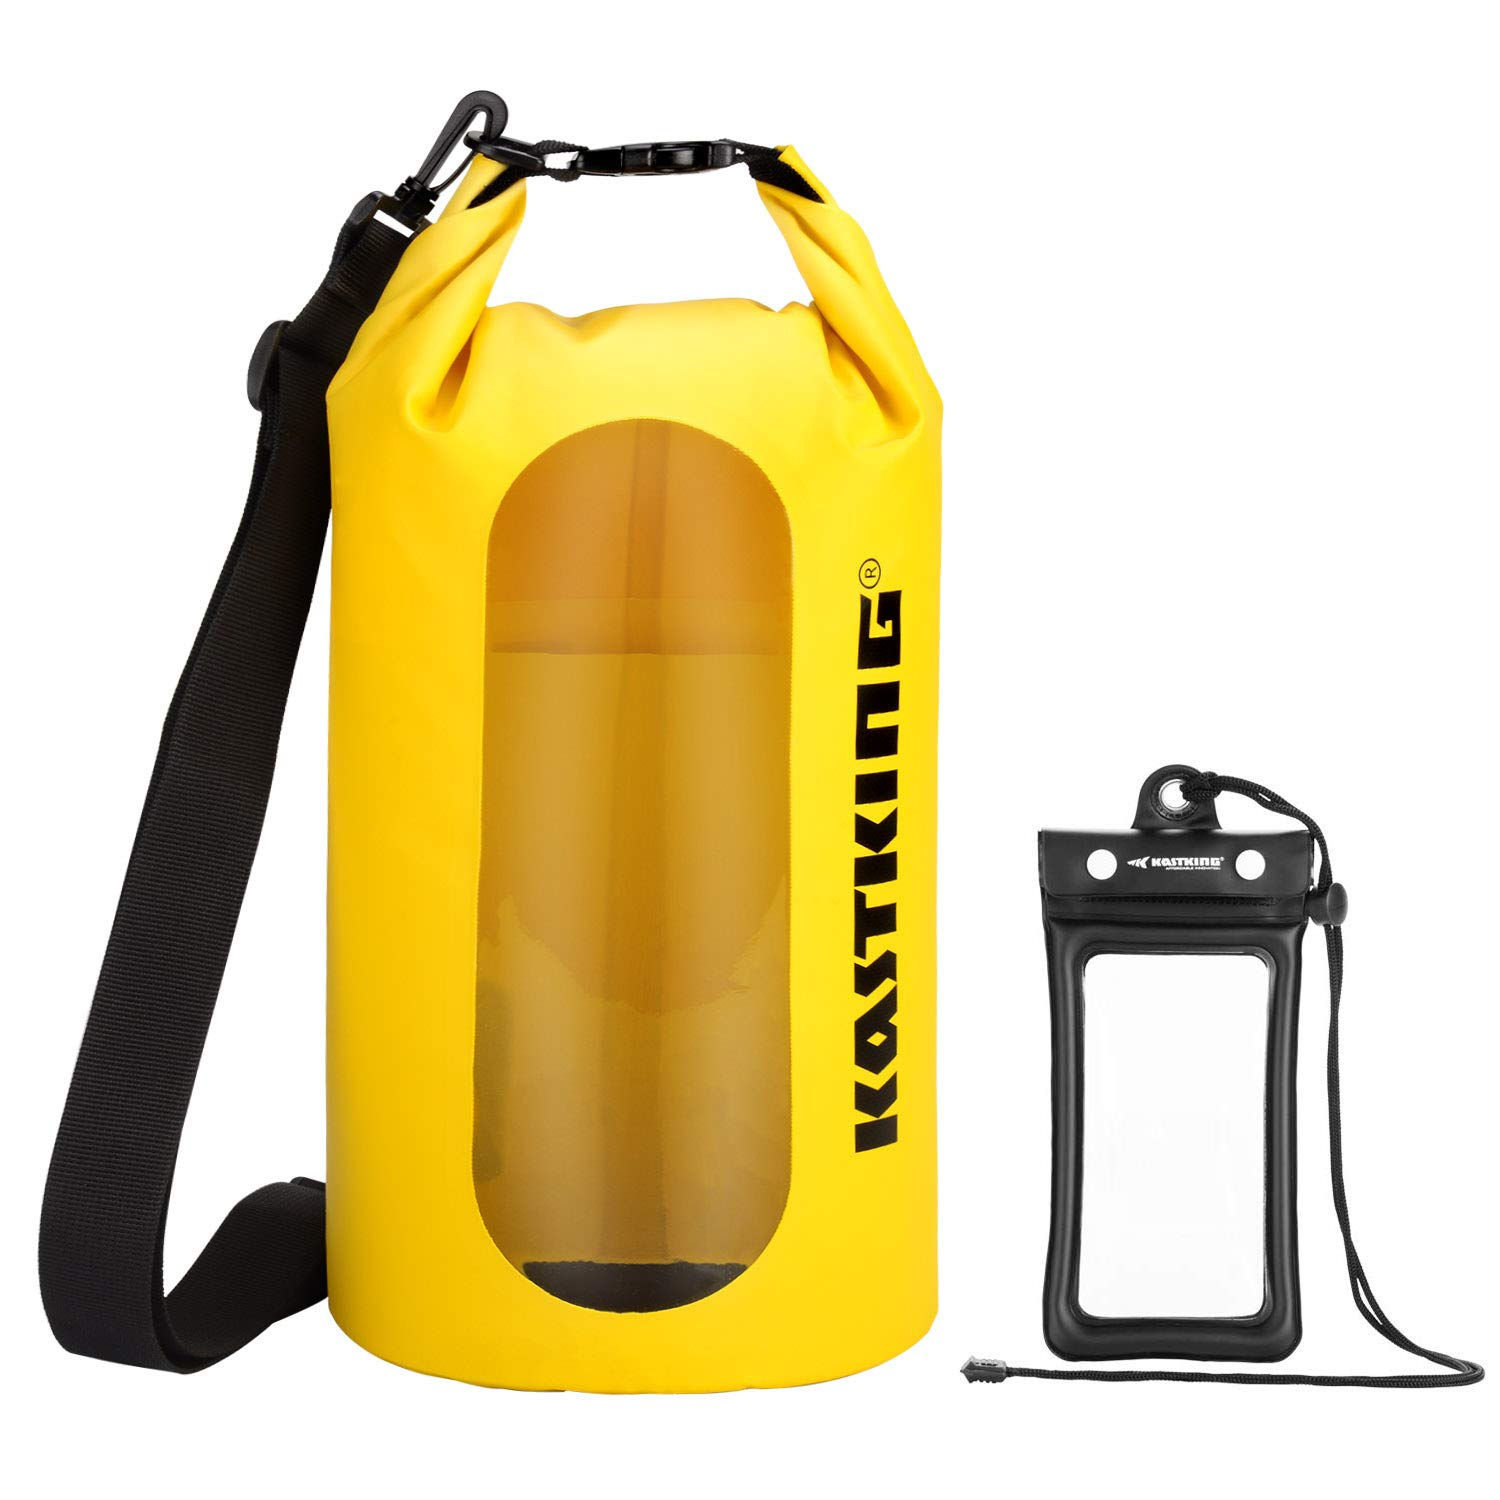 KastKing Floating Waterproof Dry Bag, Yellow Dry Bag Combo, 20L